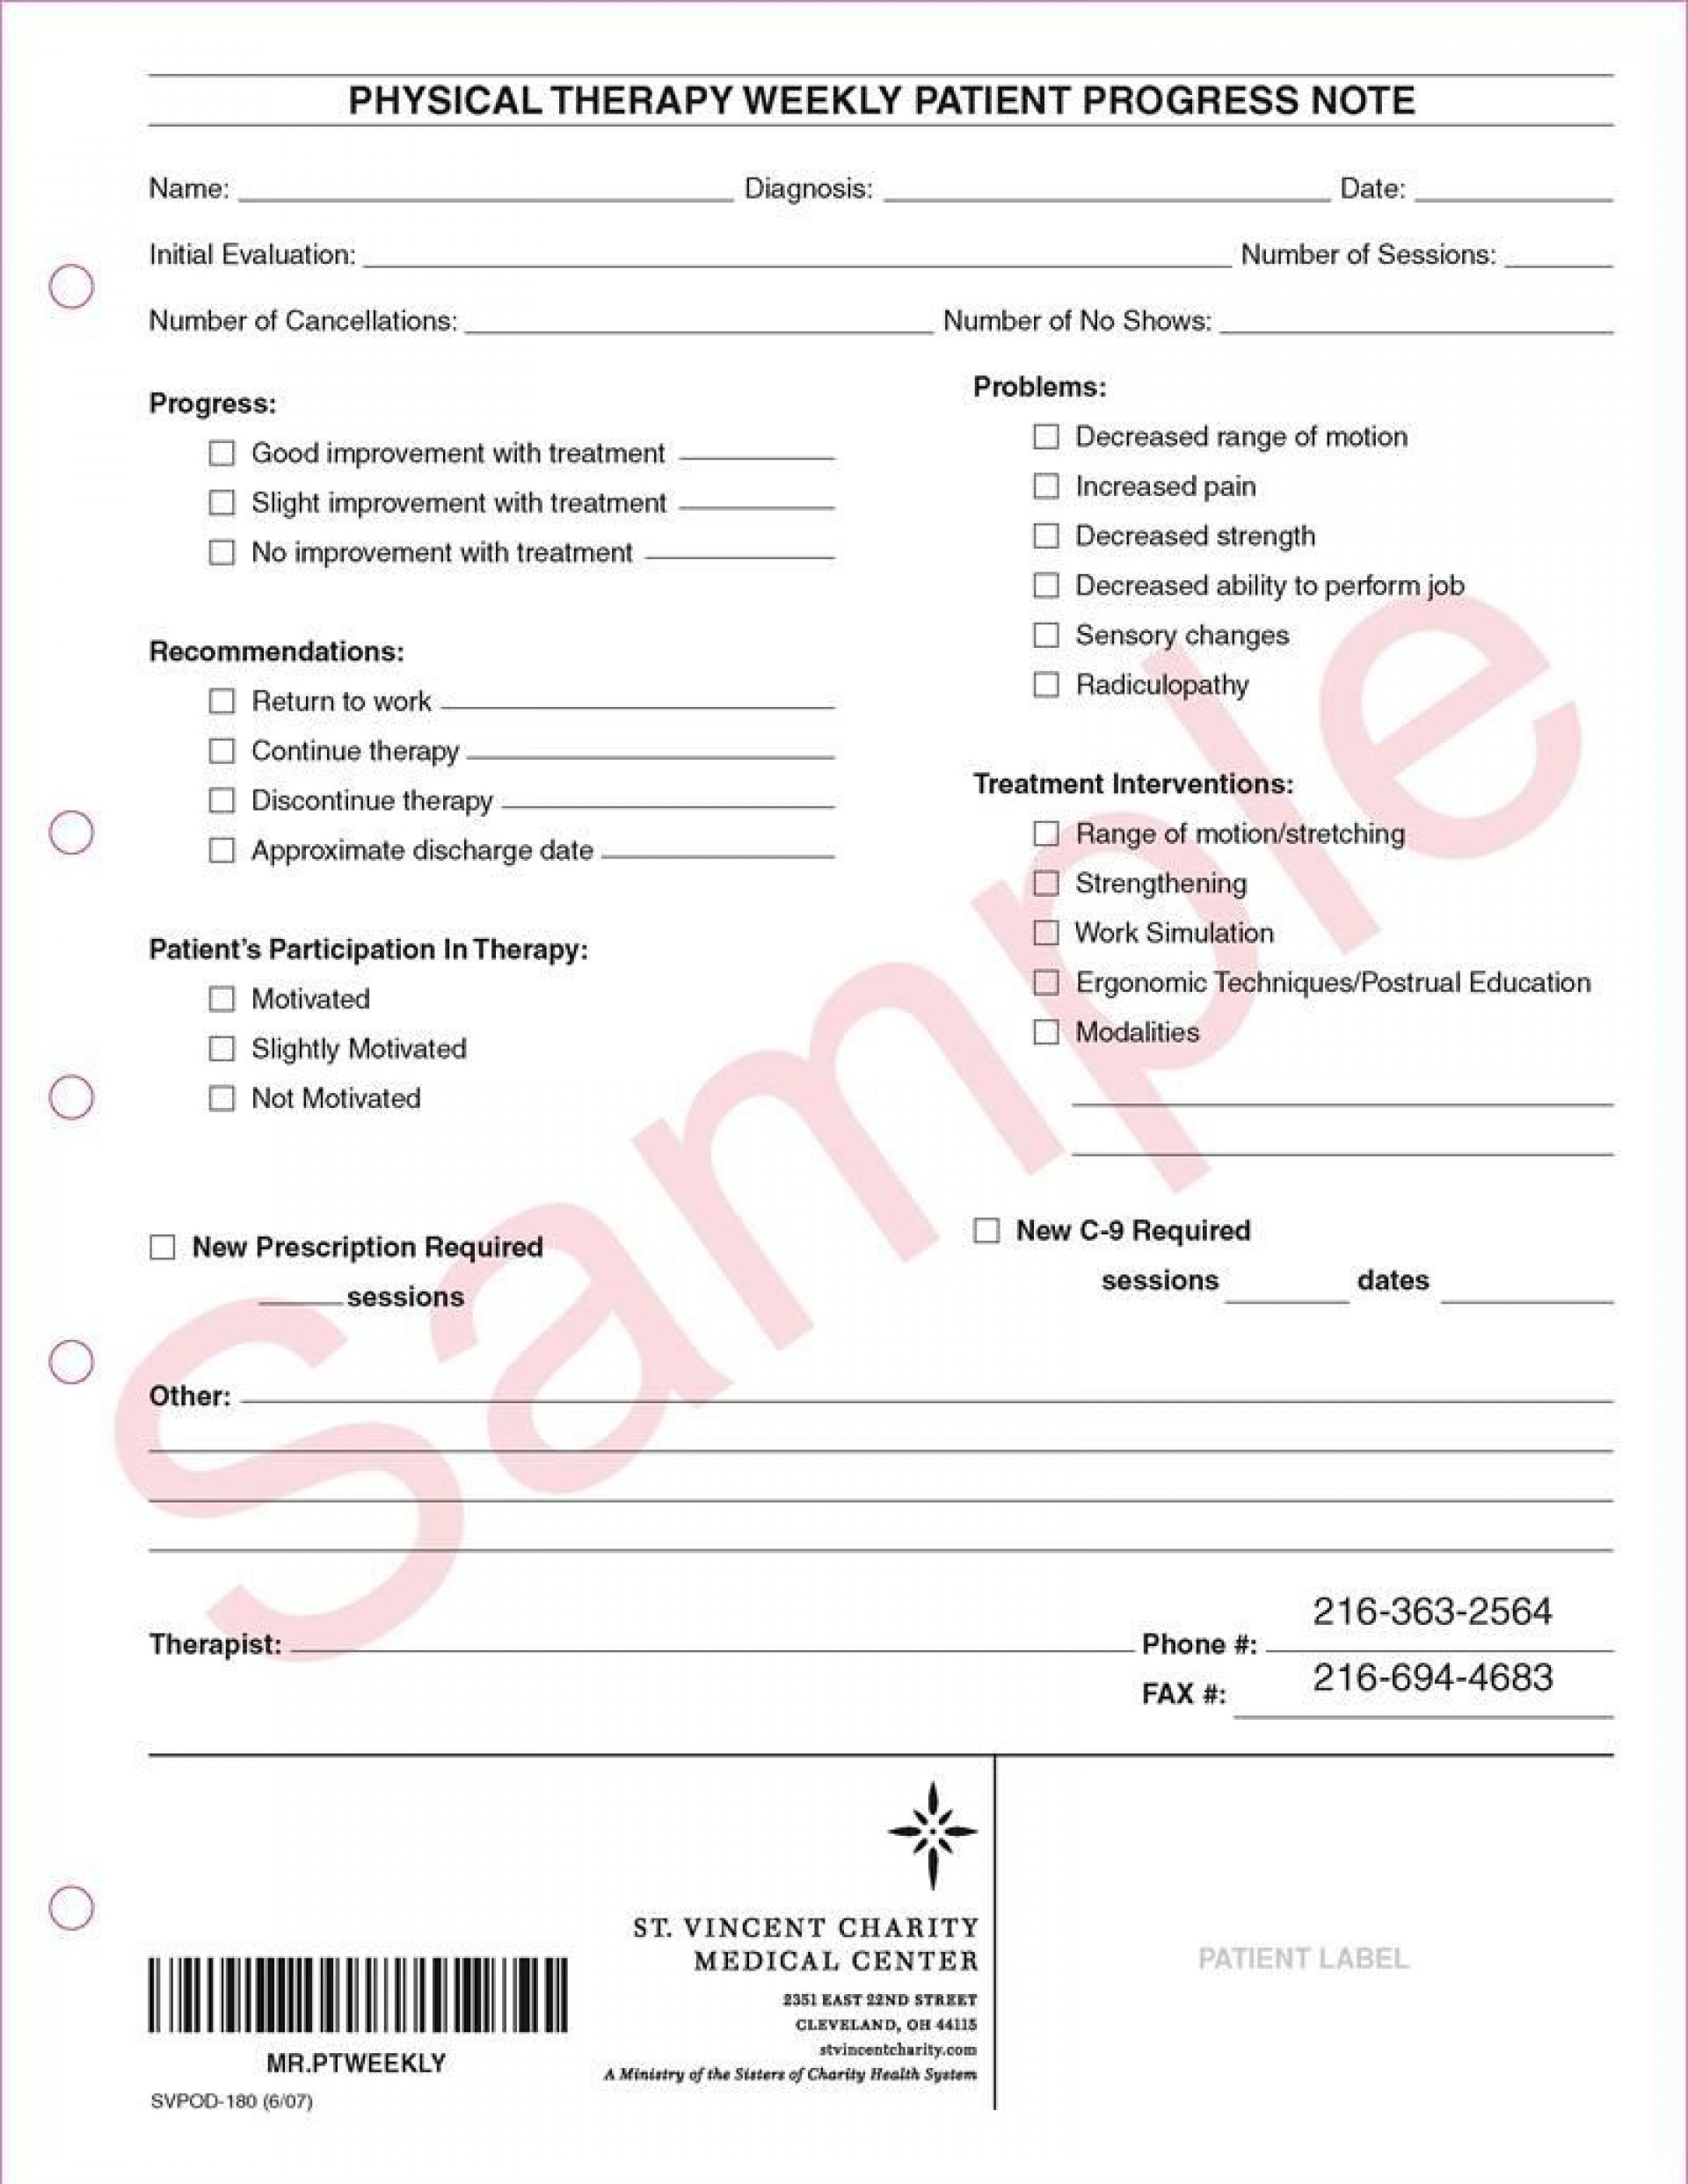 002 Remarkable Physical Therapy Progres Note Template Image  Outpatient Pdf1920